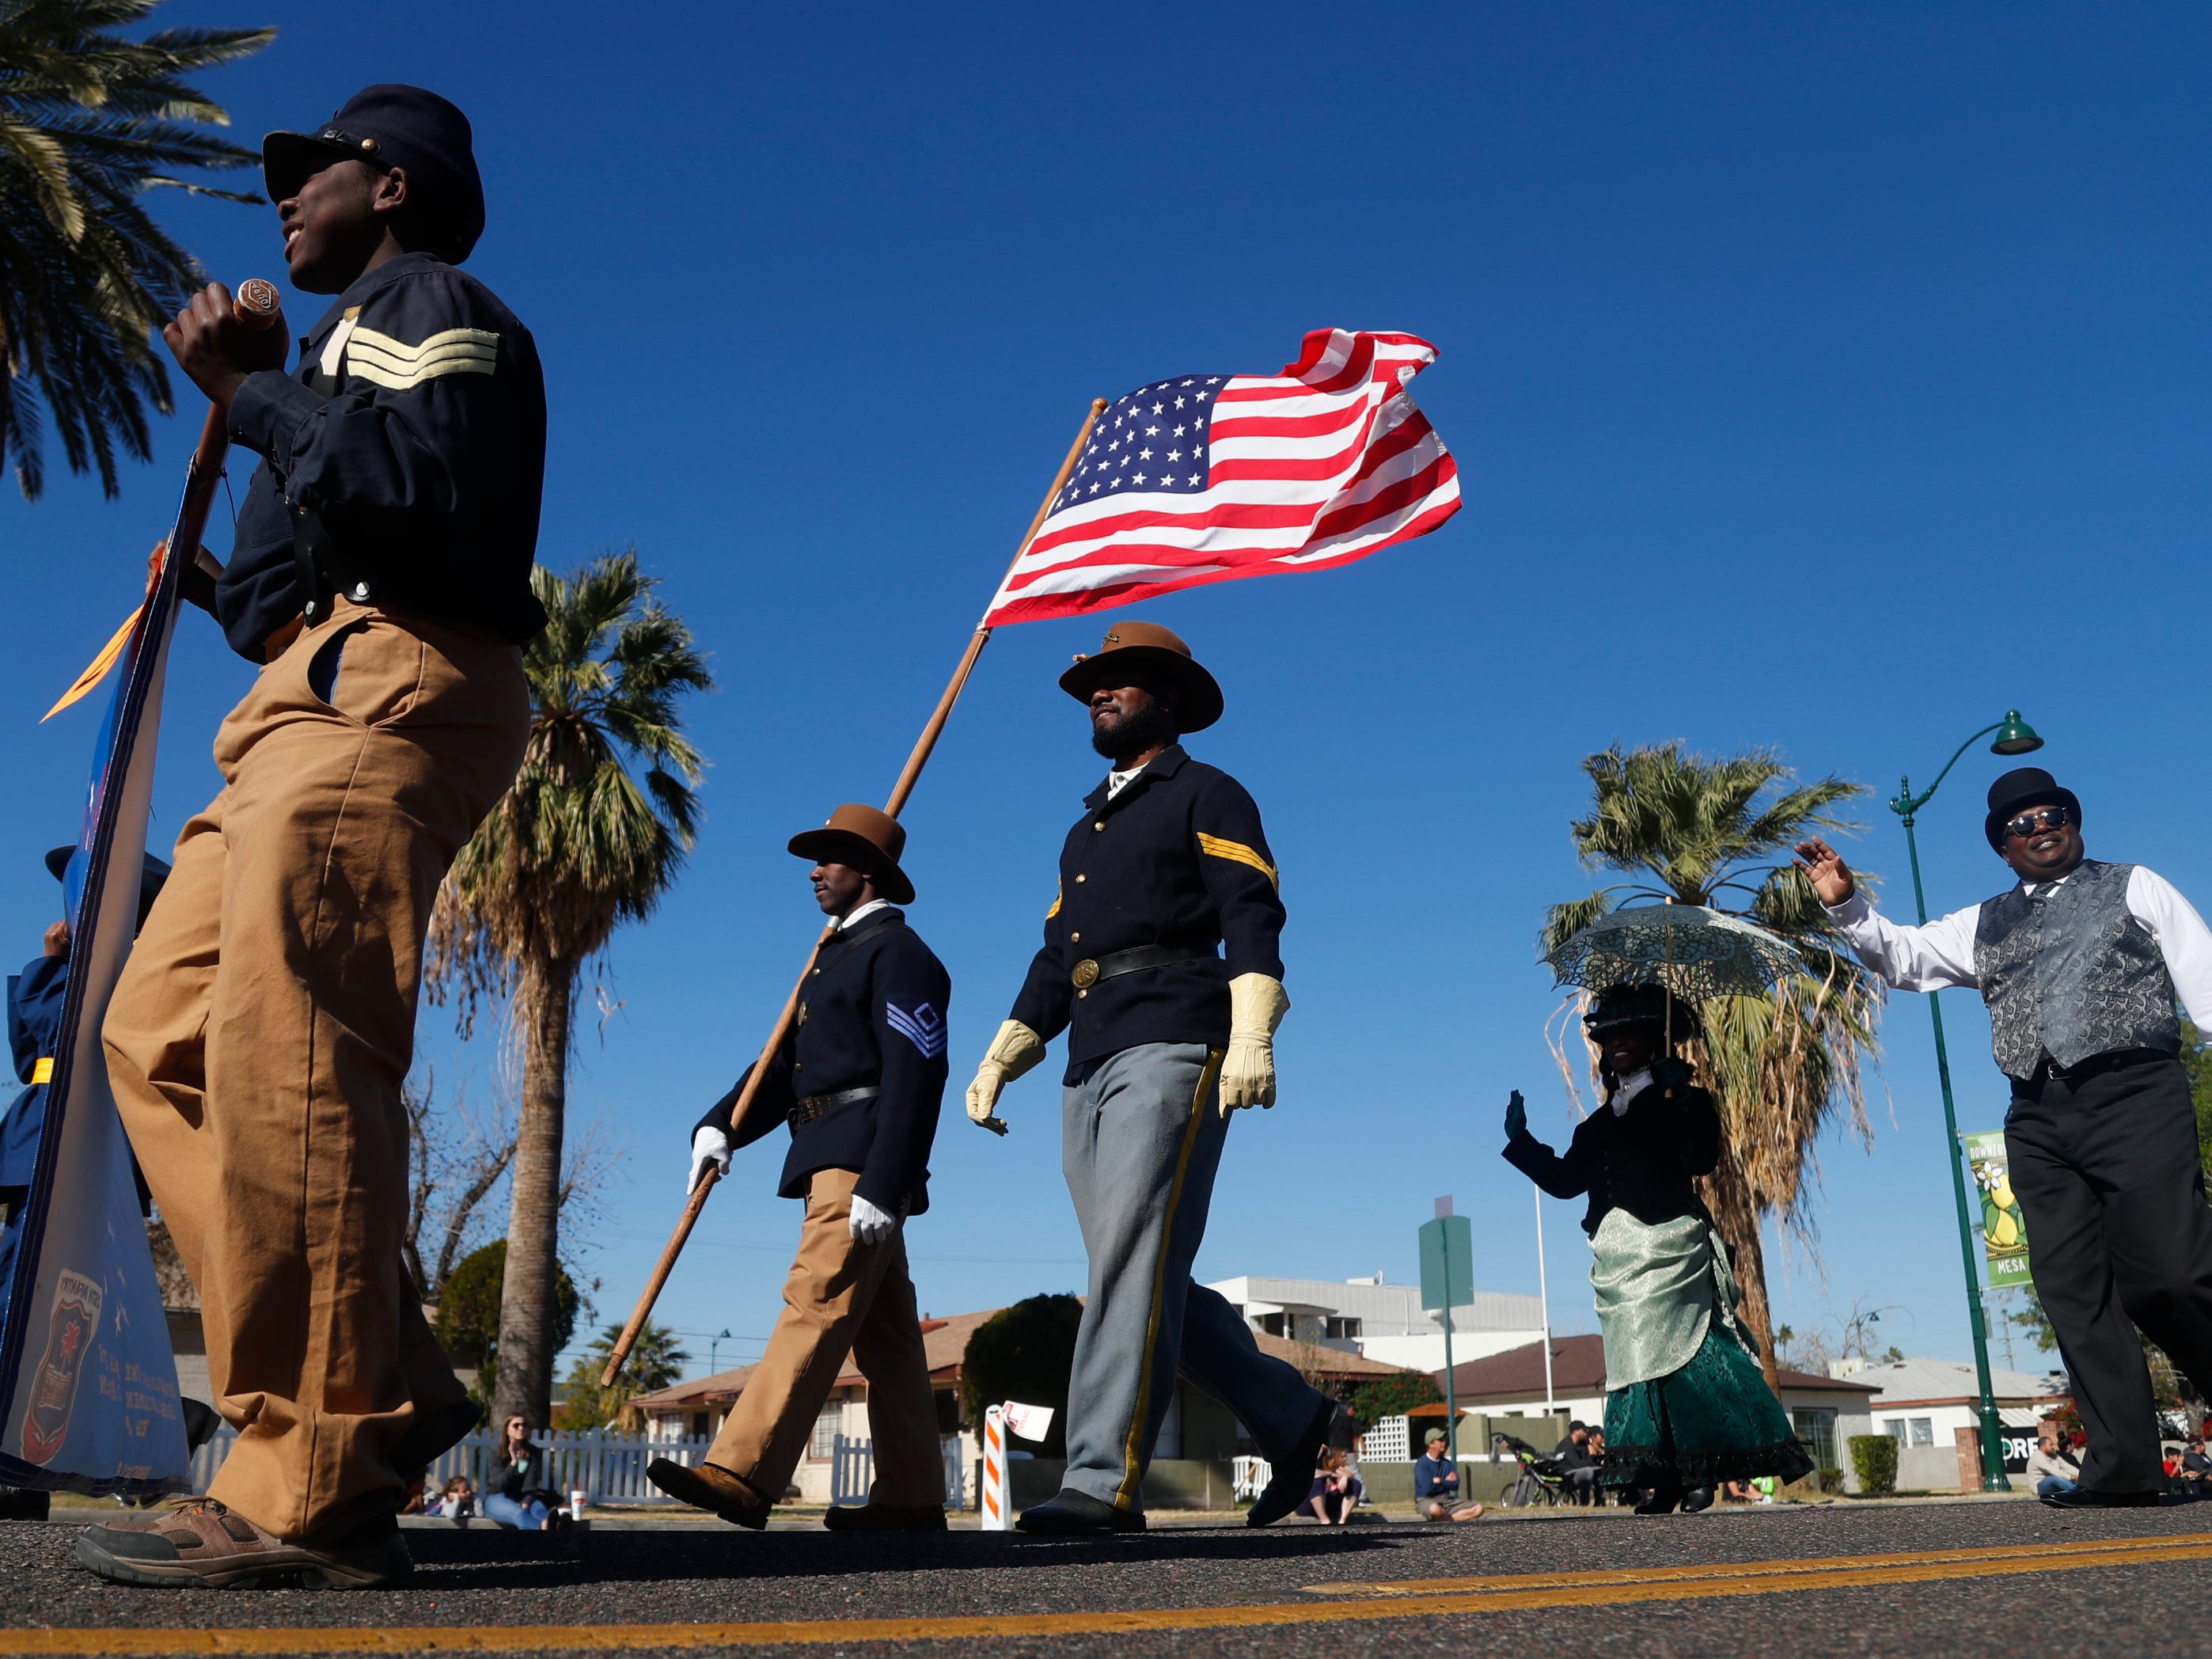 Buffalo Soldiers of Arizona come down the parade route during the MLK Day Parade in Mesa, Ariz.